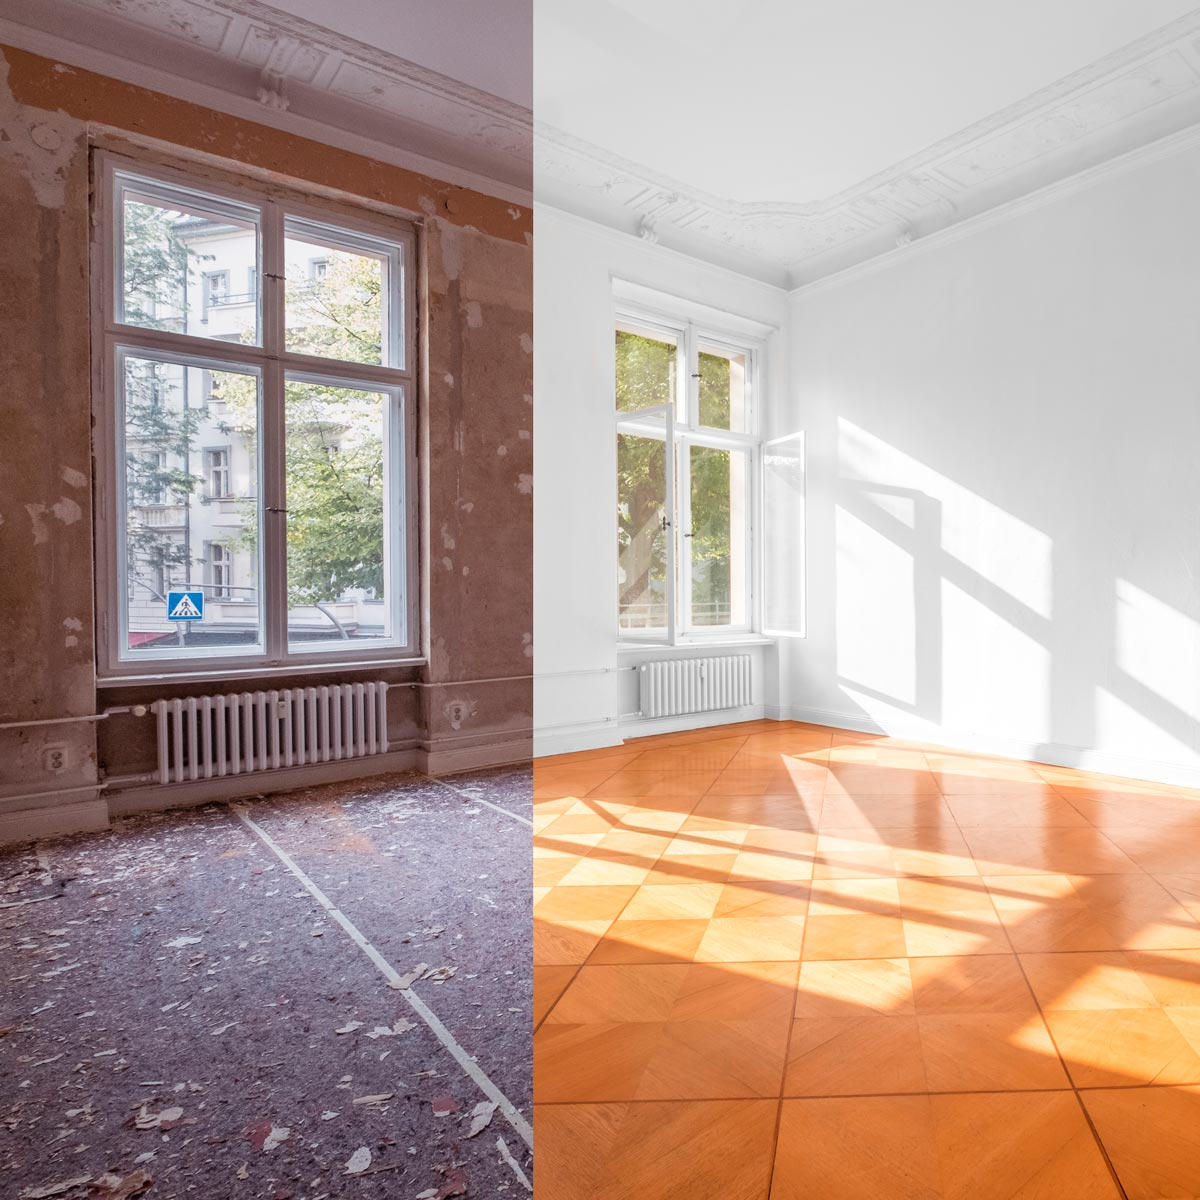 Which Interior Renovation Adds the Most Value to a House?